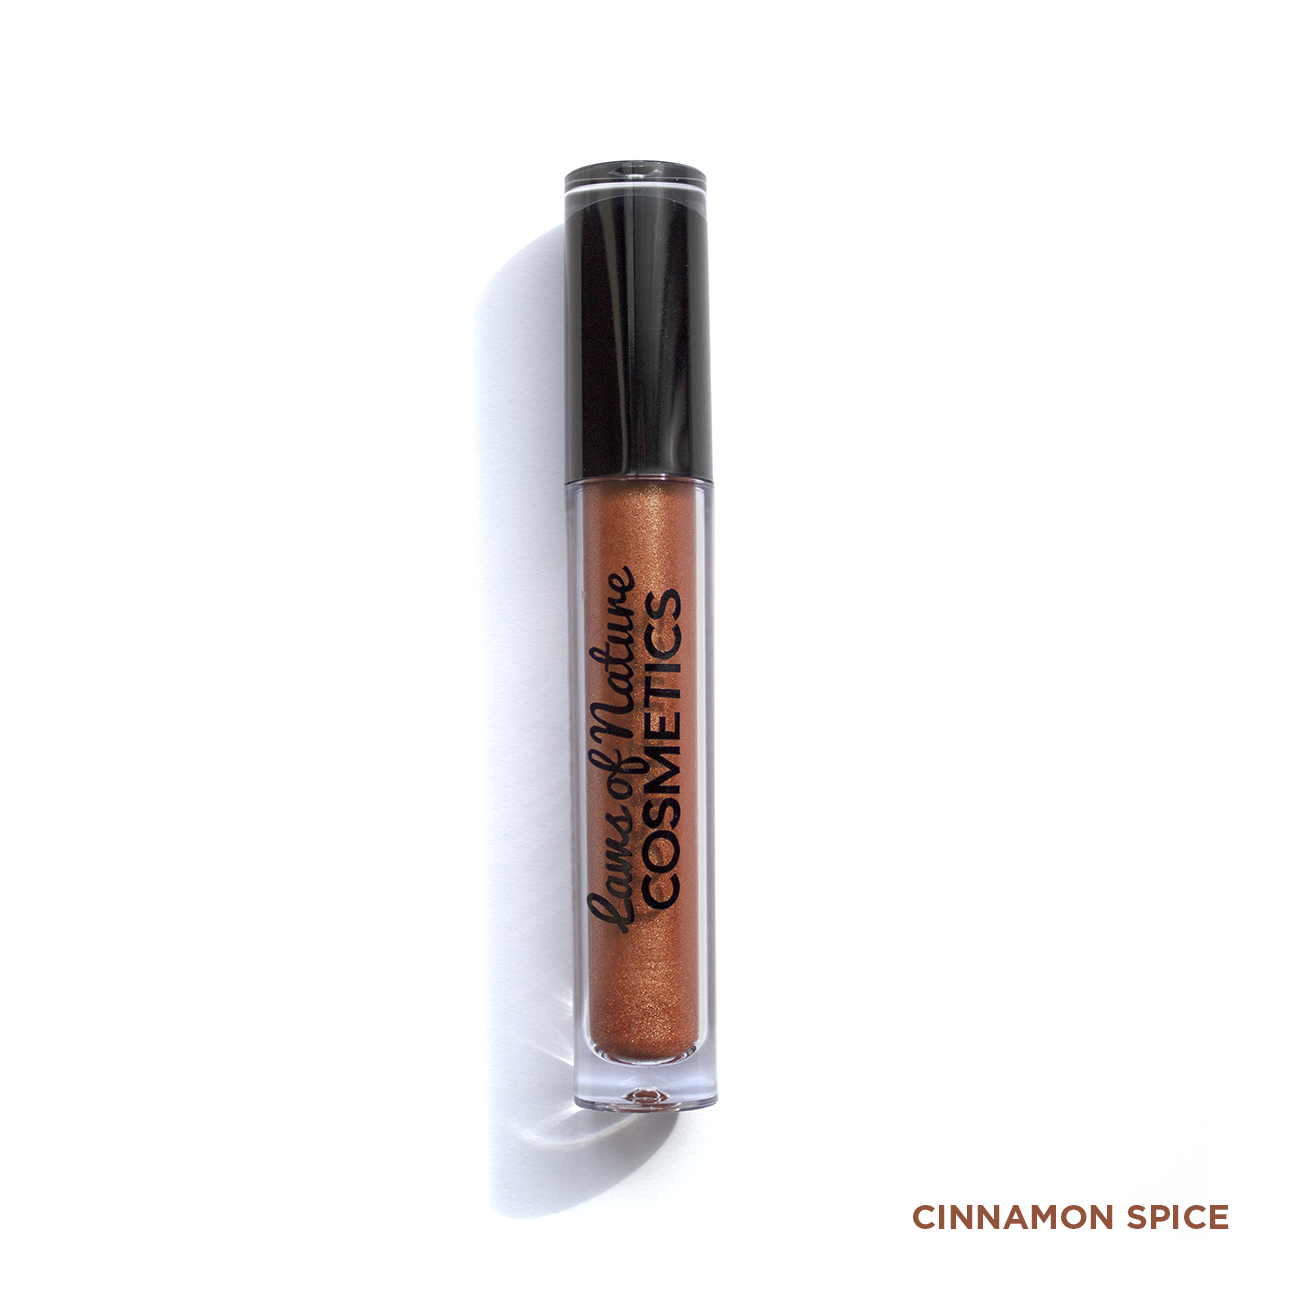 Cinnamon Spice Liquid Eyeshadow